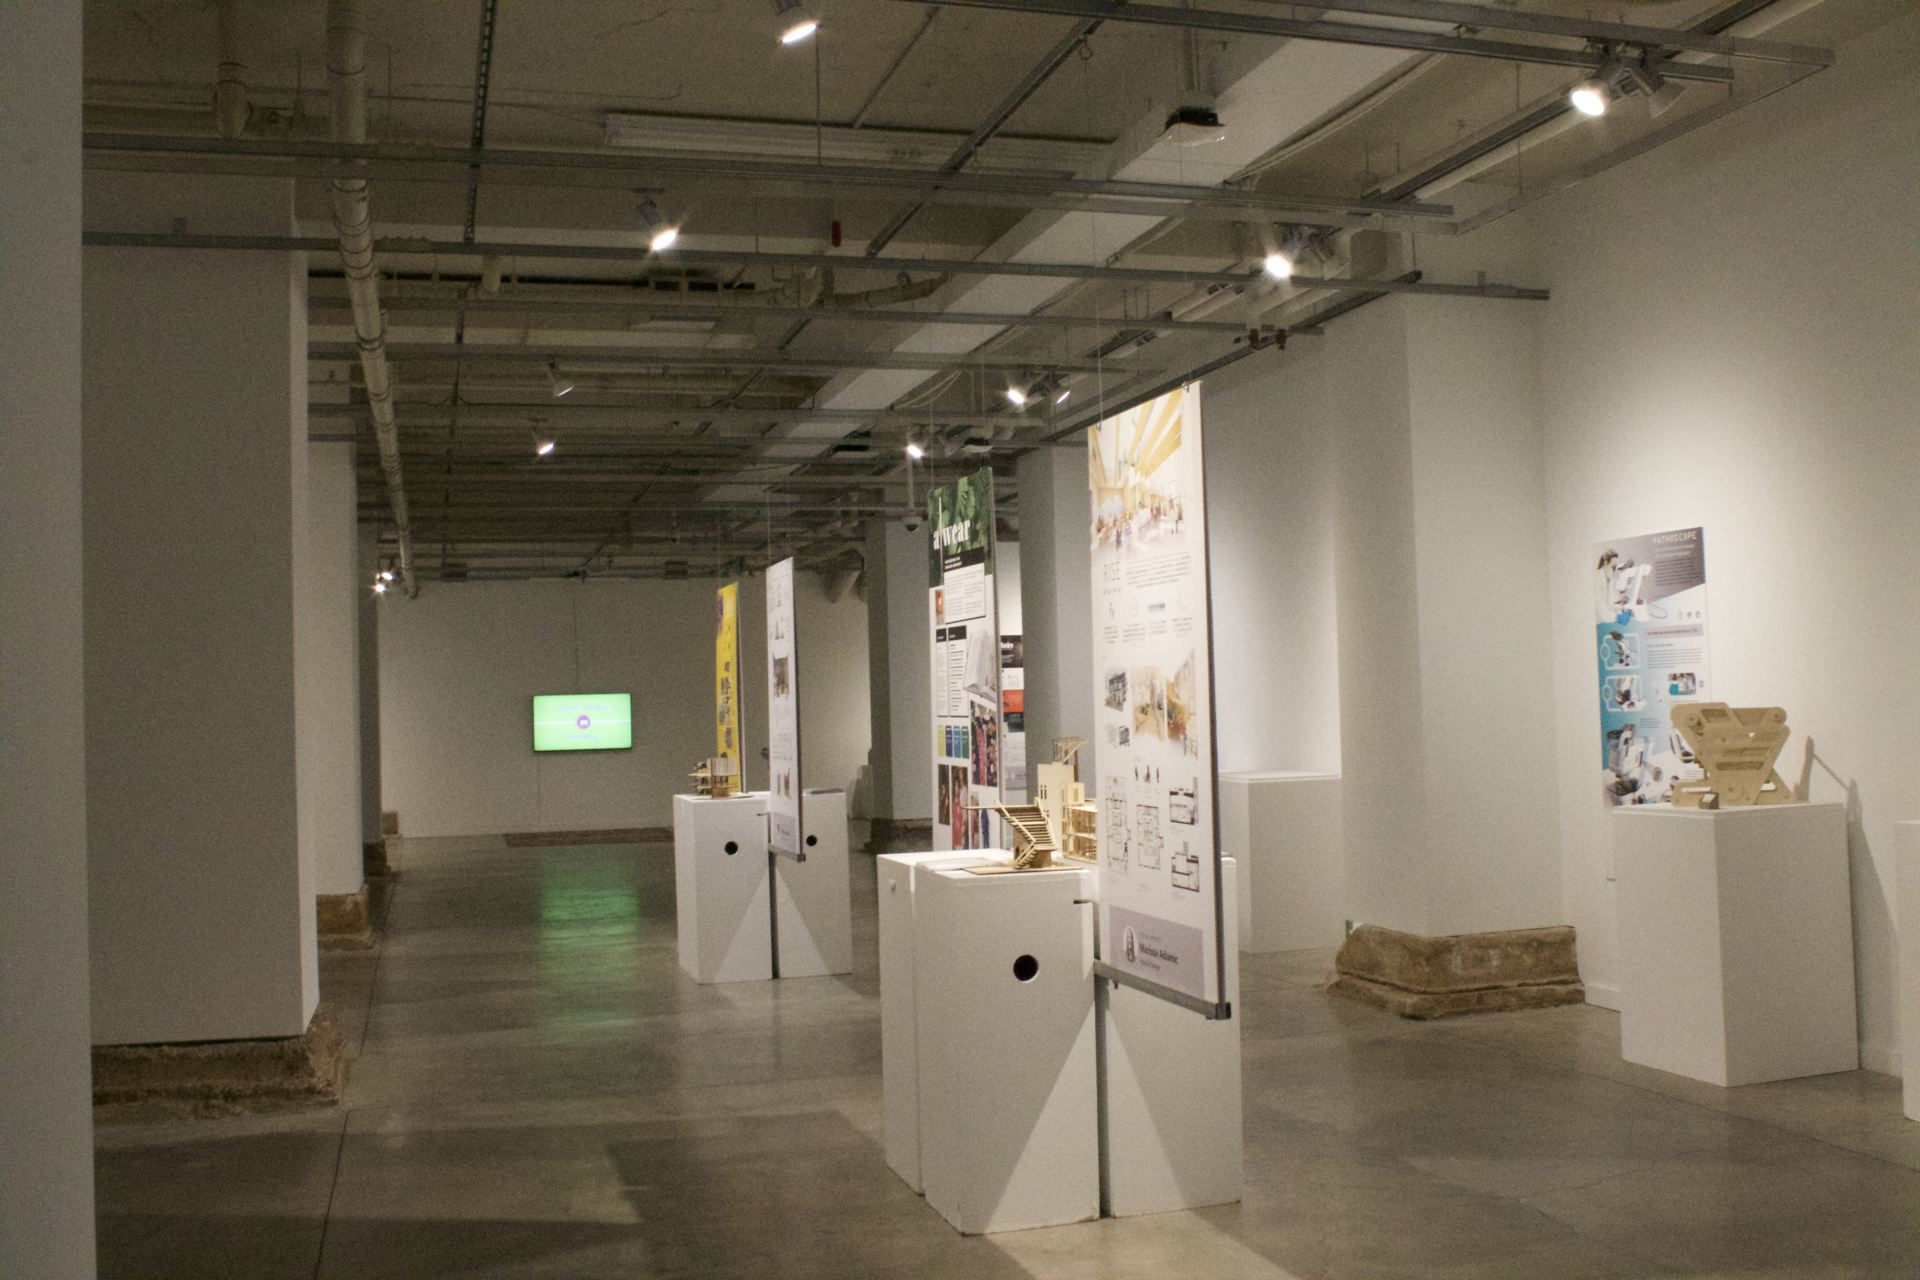 Soon To Be Graduates Of The Department Of Design At Ohio State Showcase  Their Senior Theses In The Annual Spring Exhibition At The Urban Arts Space  In ...